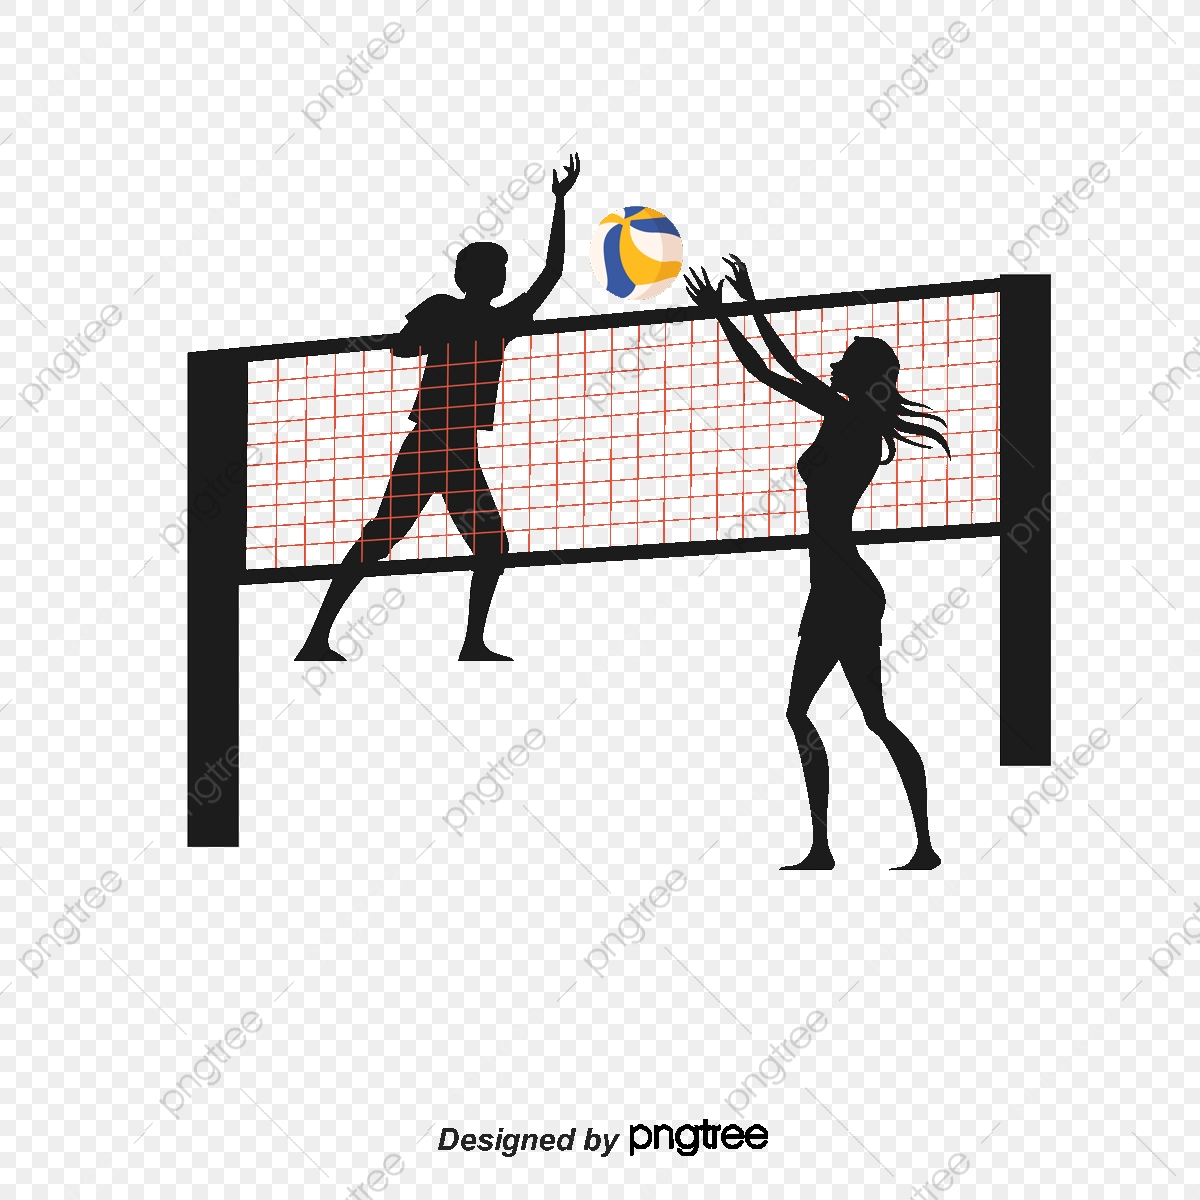 Smash And Block The Volleyball Player Clipart Beach Net Png Transparent Clipart Image And Psd File For Free Download